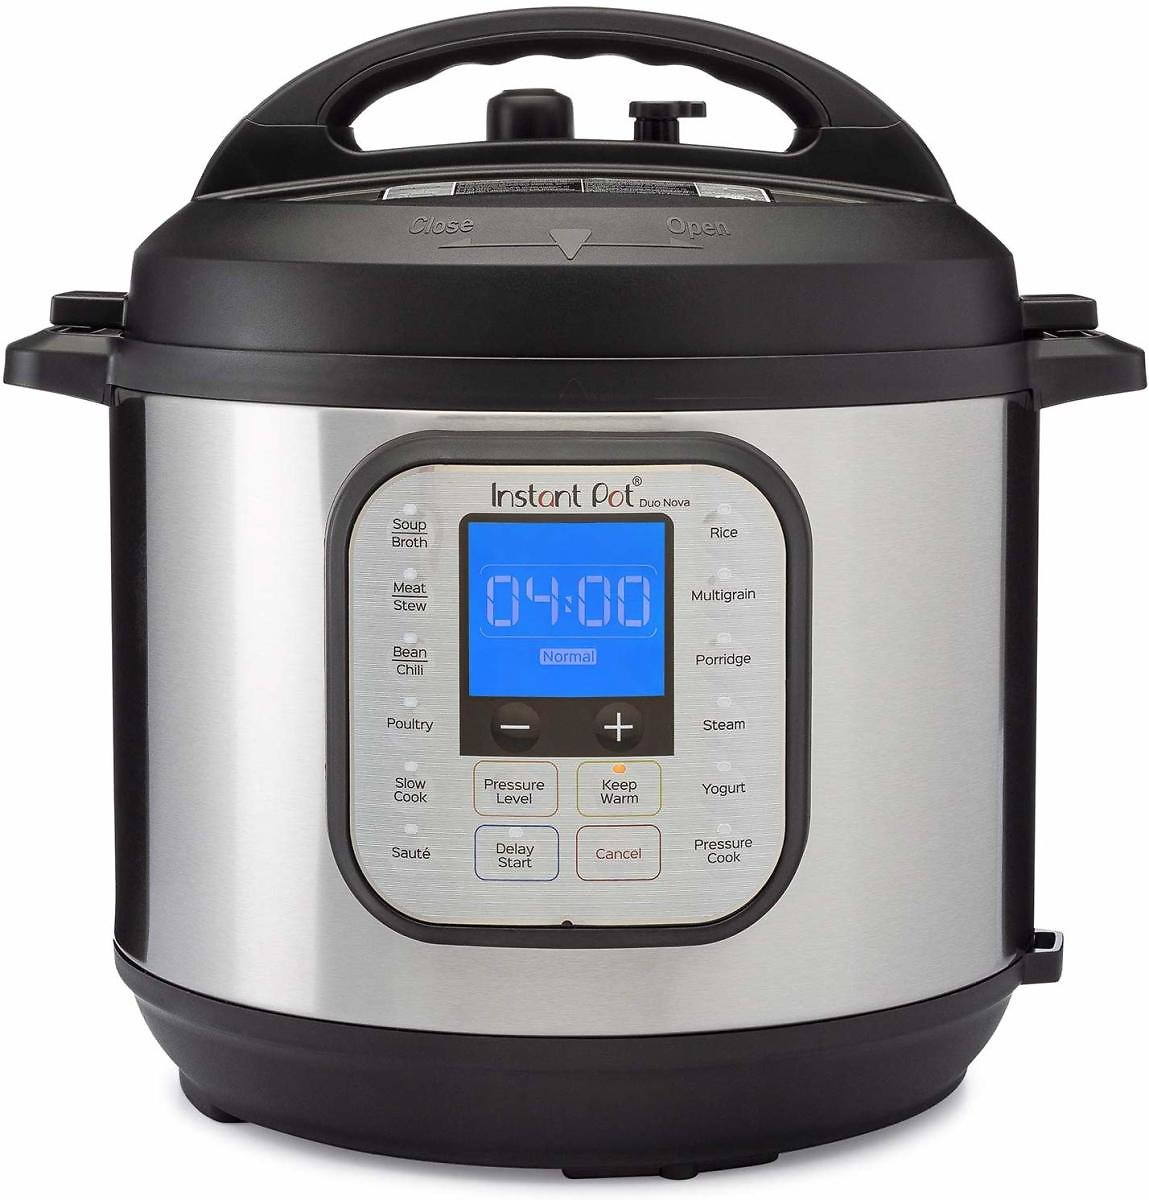 Instant Pot Duo Nova Pressure Cooker 7 in 1, 6 Qt + F/S